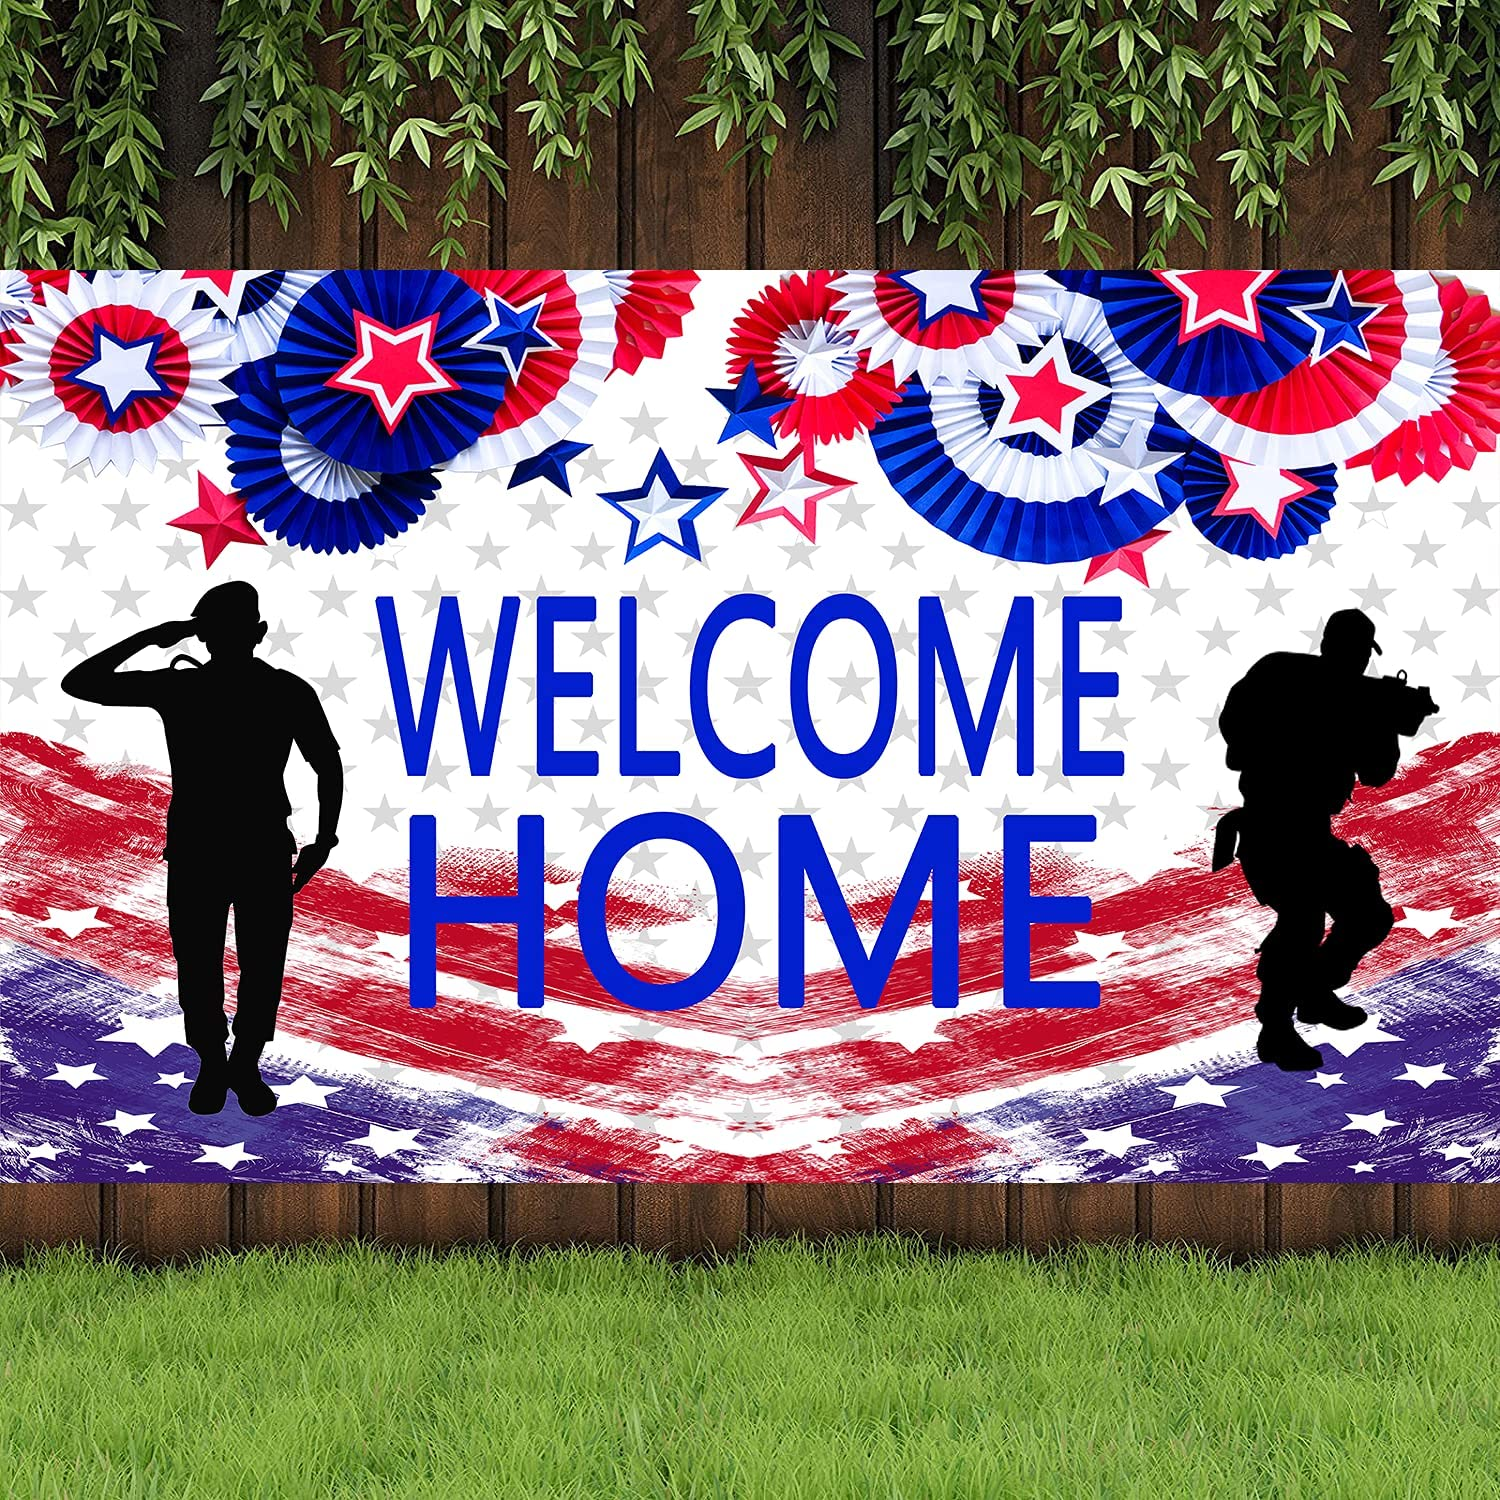 4x6FT American Flag Patriotic Soldier Welcome Home Backdrop Photography,Patriotic Theme Deployment Returning Back Military Army Homecoming Party Decoration (Welcome Home)